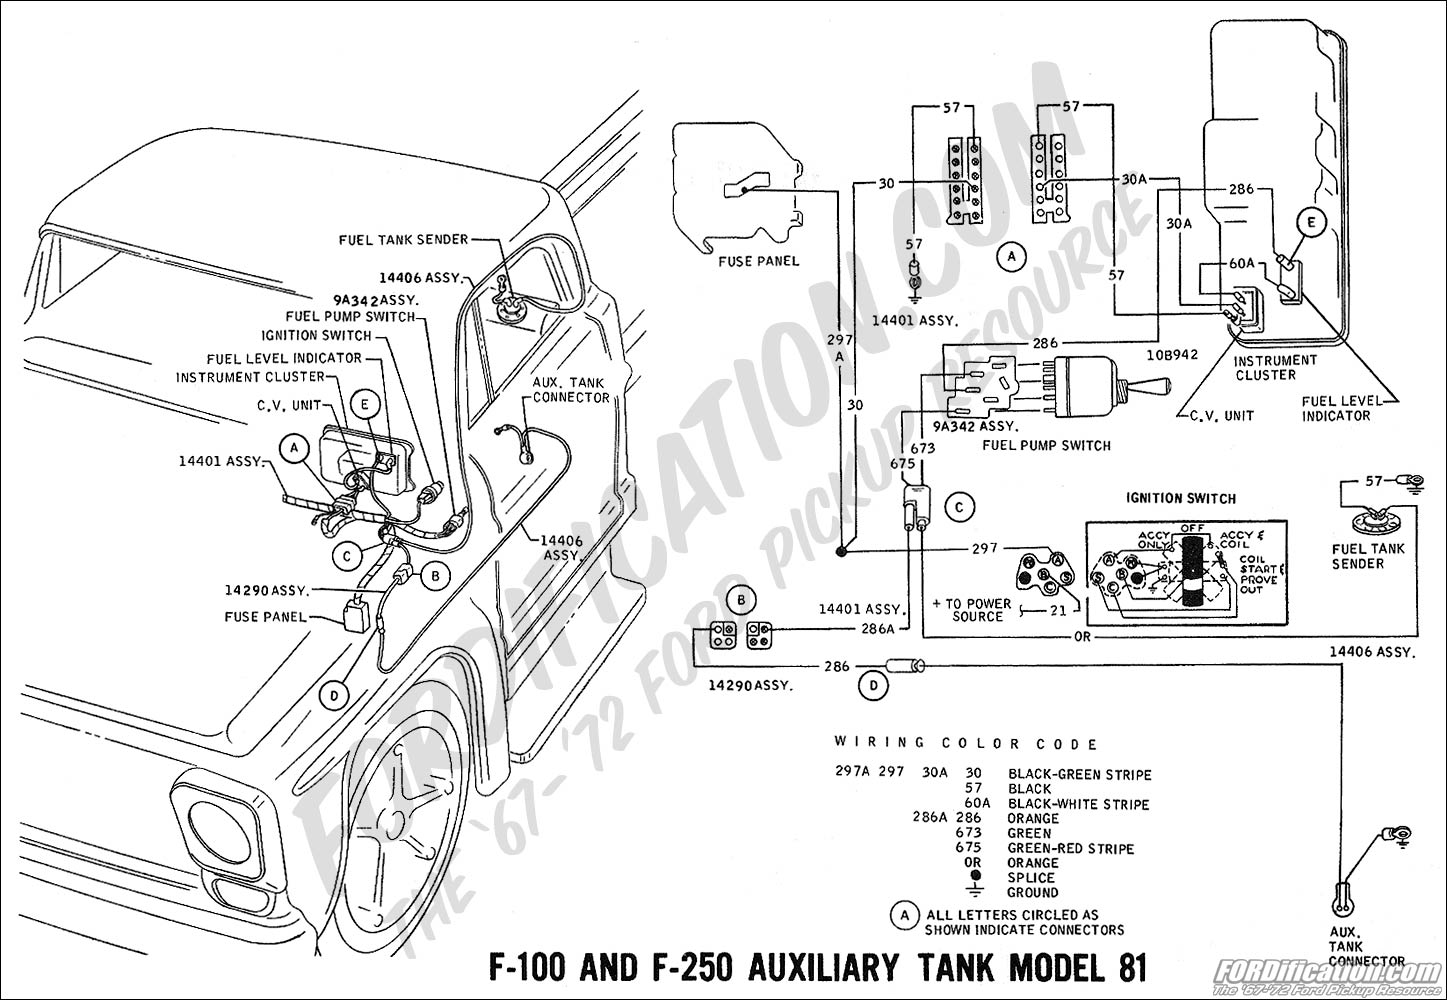 1979 F250 Fuse Box - Wiring Data Diagram Ford Truck Wiring Diagrams on ford alternator wiring diagram, ford e350 wiring diagram, ford explorer wiring diagram, ford radio wiring diagram, ford truck wiring harness, 1996 ford f 150 diagrams, ford schematics, ford econoline wiring-diagram, ford bronco wiring diagram, ford wiring color codes, ford truck electrical diagrams, ford f650 wiring diagram, ford truck brake diagrams, ford voltage regulator diagram, ford l9000 wiring-diagram, ford excursion wiring diagram, ford f-150 7-way wiring diagram, ford f-250 wiring diagram, ford think wiring diagram, ford towing package wiring diagram,